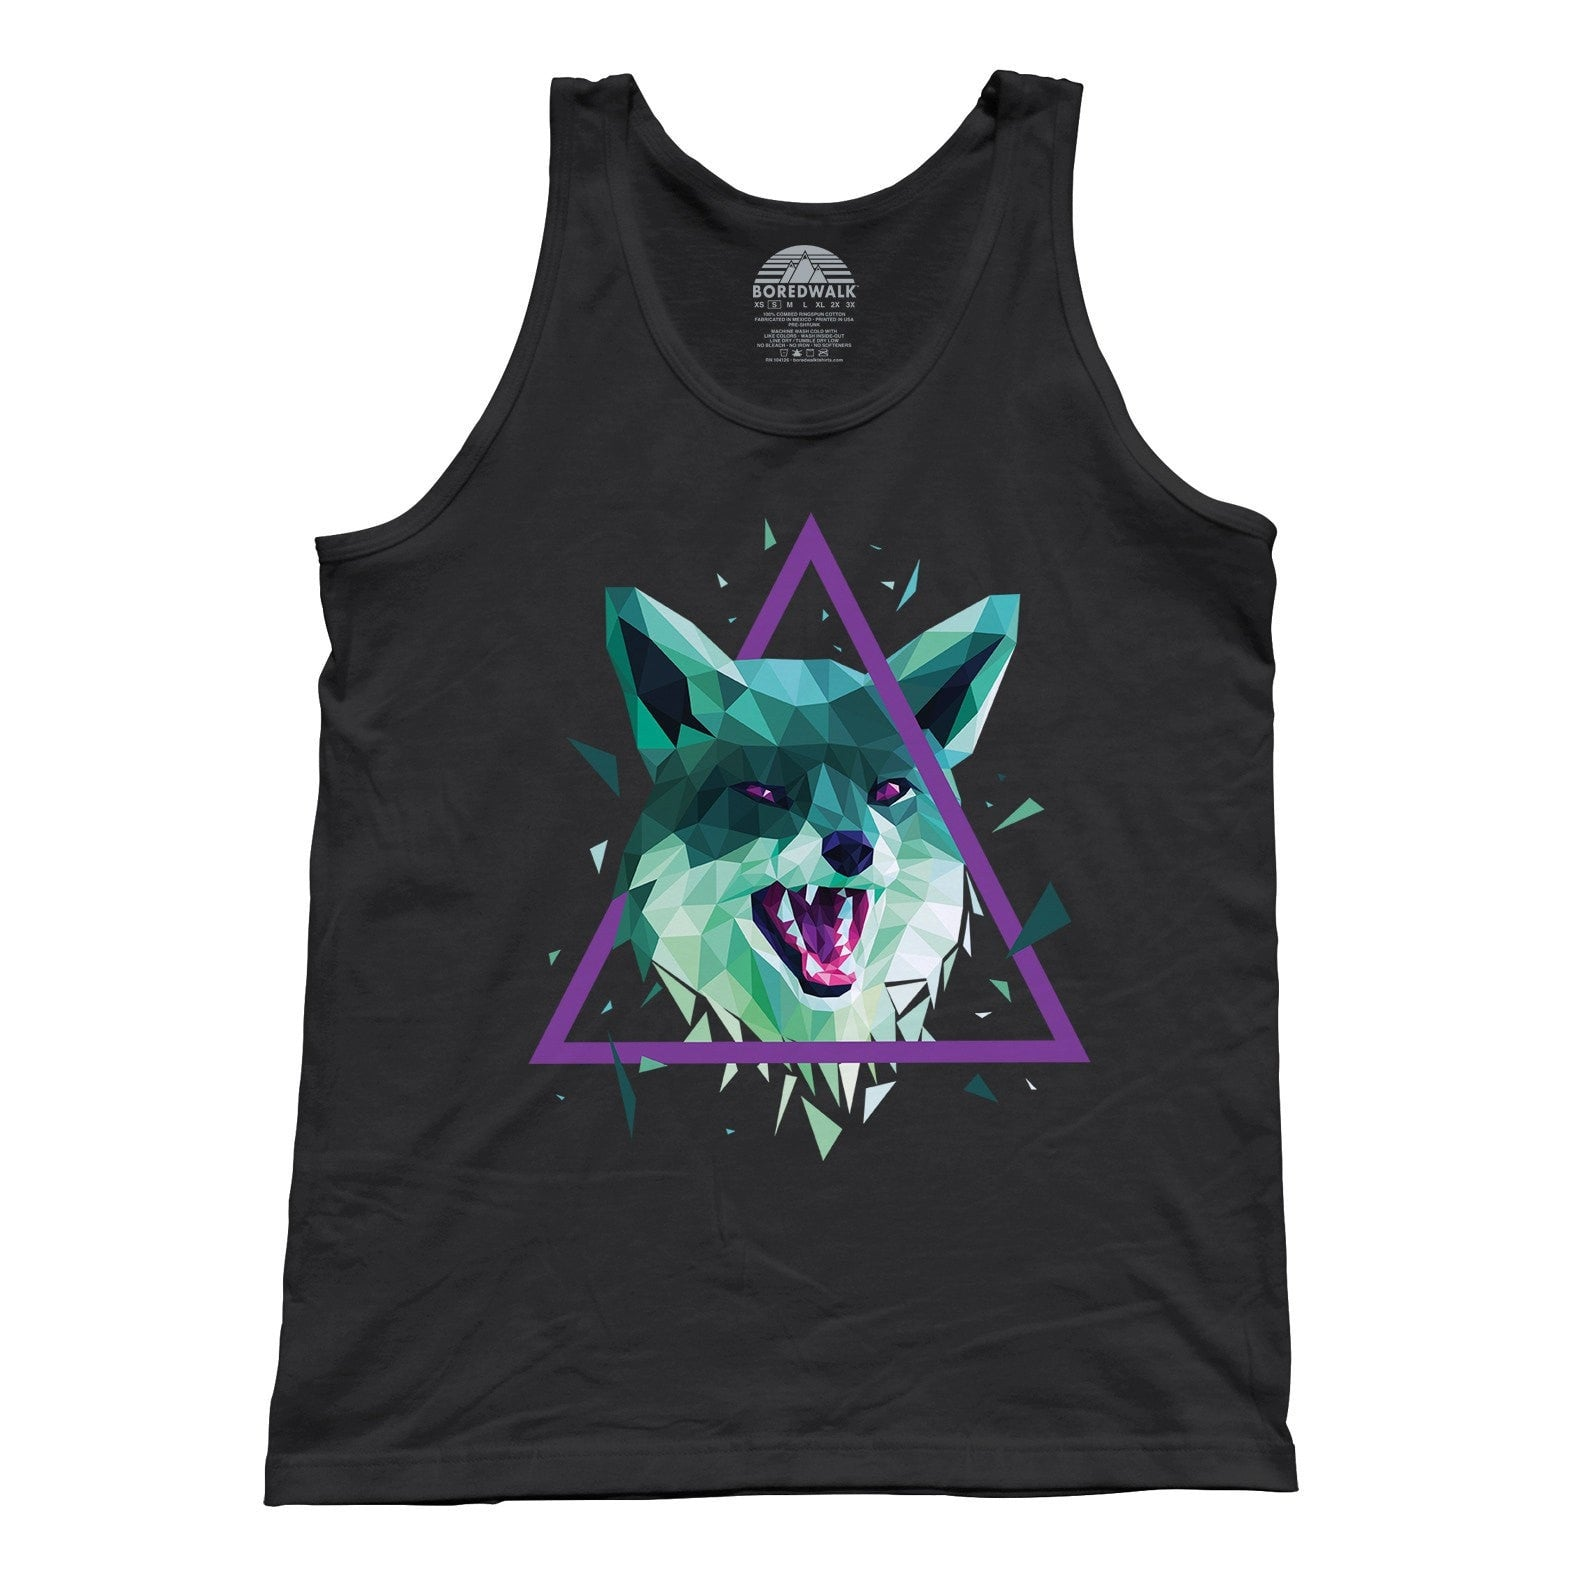 Unisex Geometric Fox Tank Top